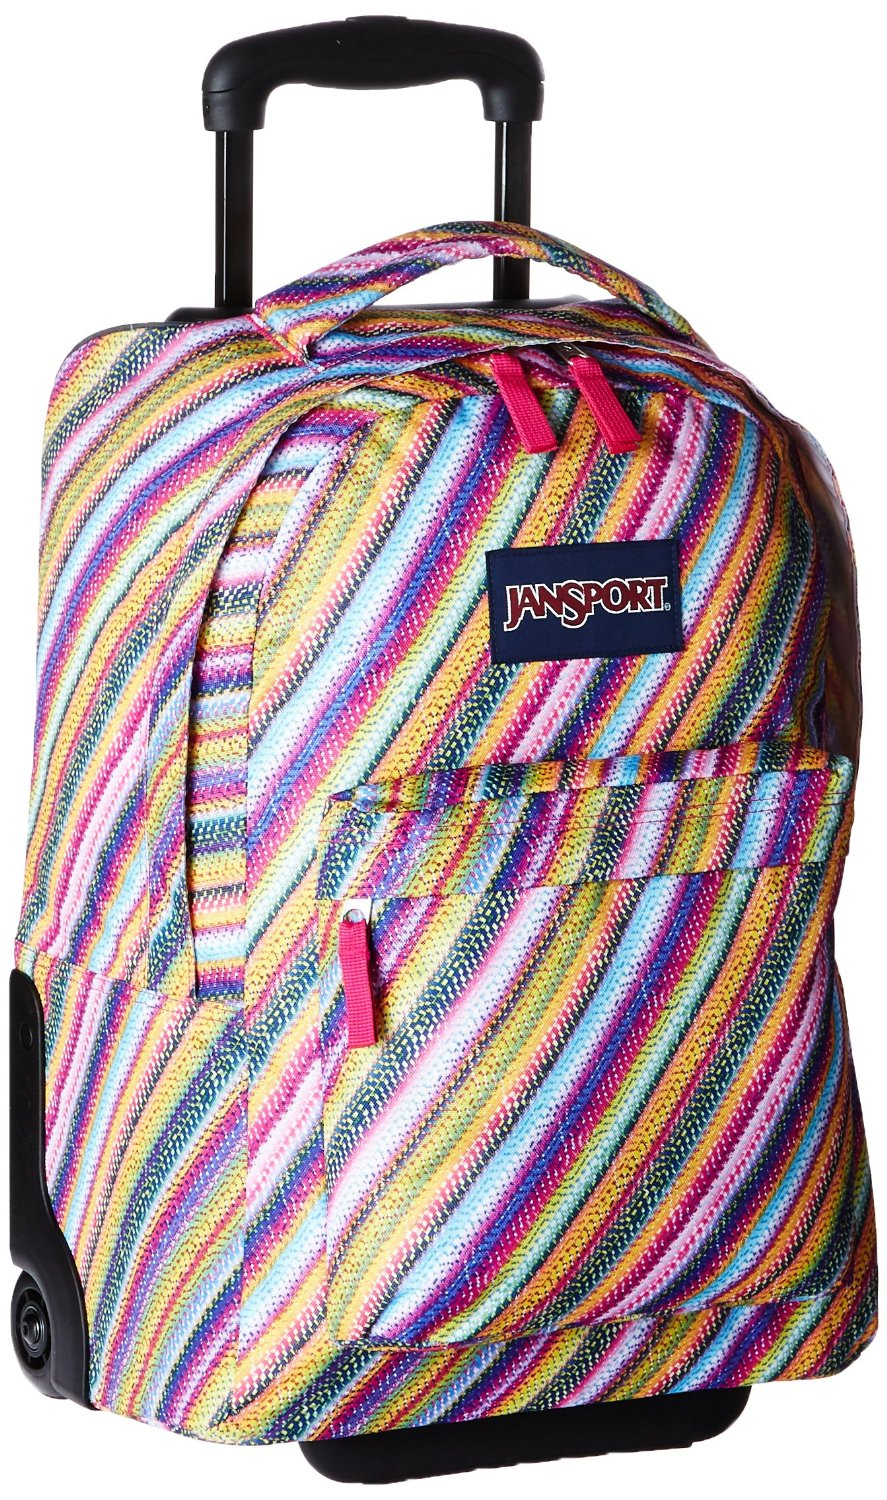 a35433dd5 Buy Jansport Superbreak Wheeled Backpack in Cheap Price on Alibaba.com